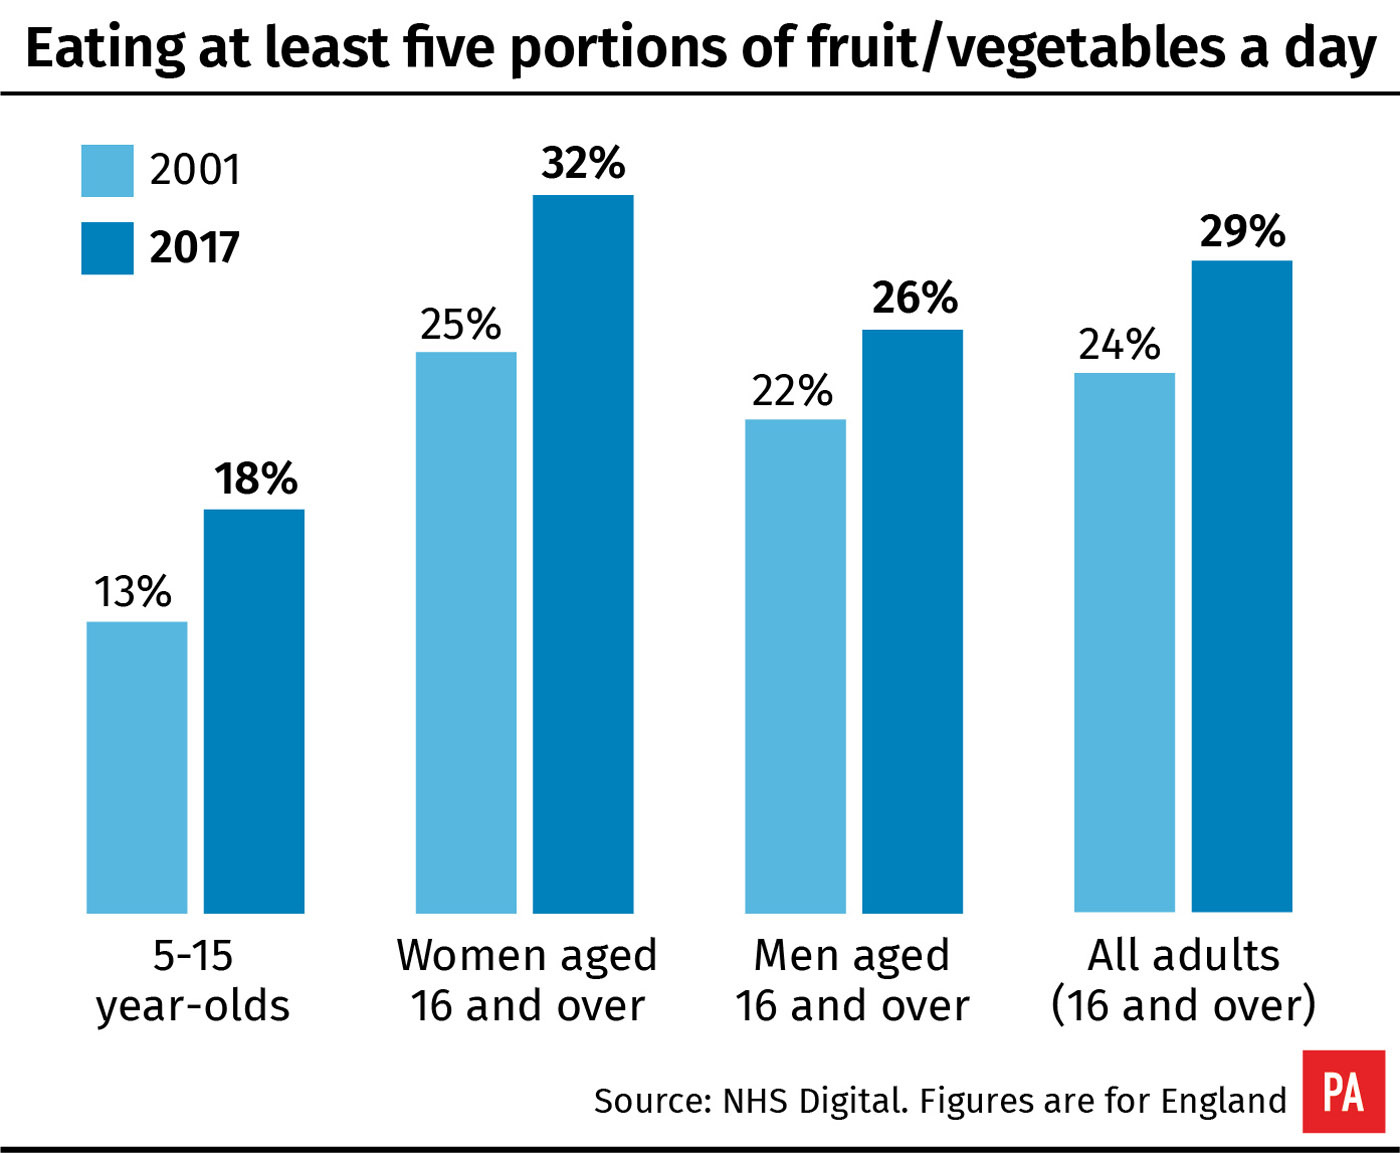 Eating at least five portions of fruit/vegetables a day